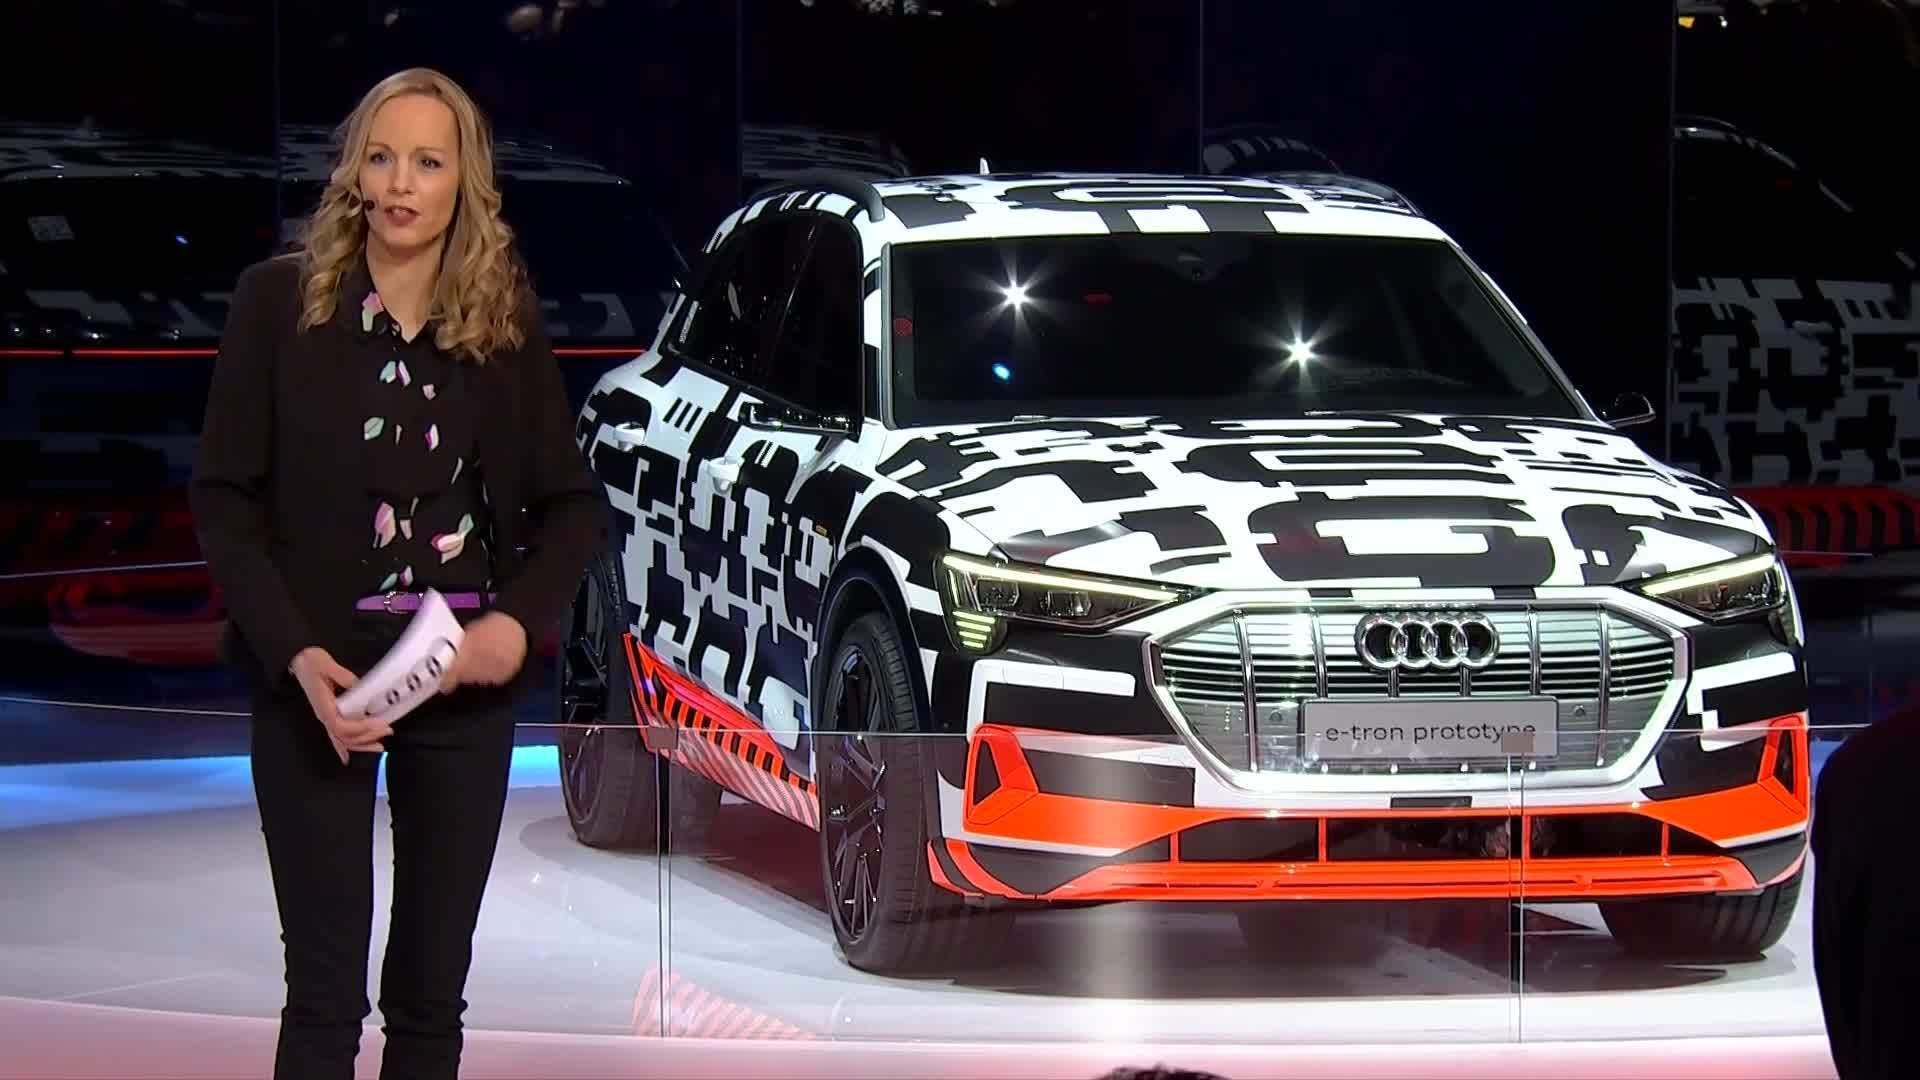 Audi A6 and Audi e-tron prototype at the Geneva Motor Show